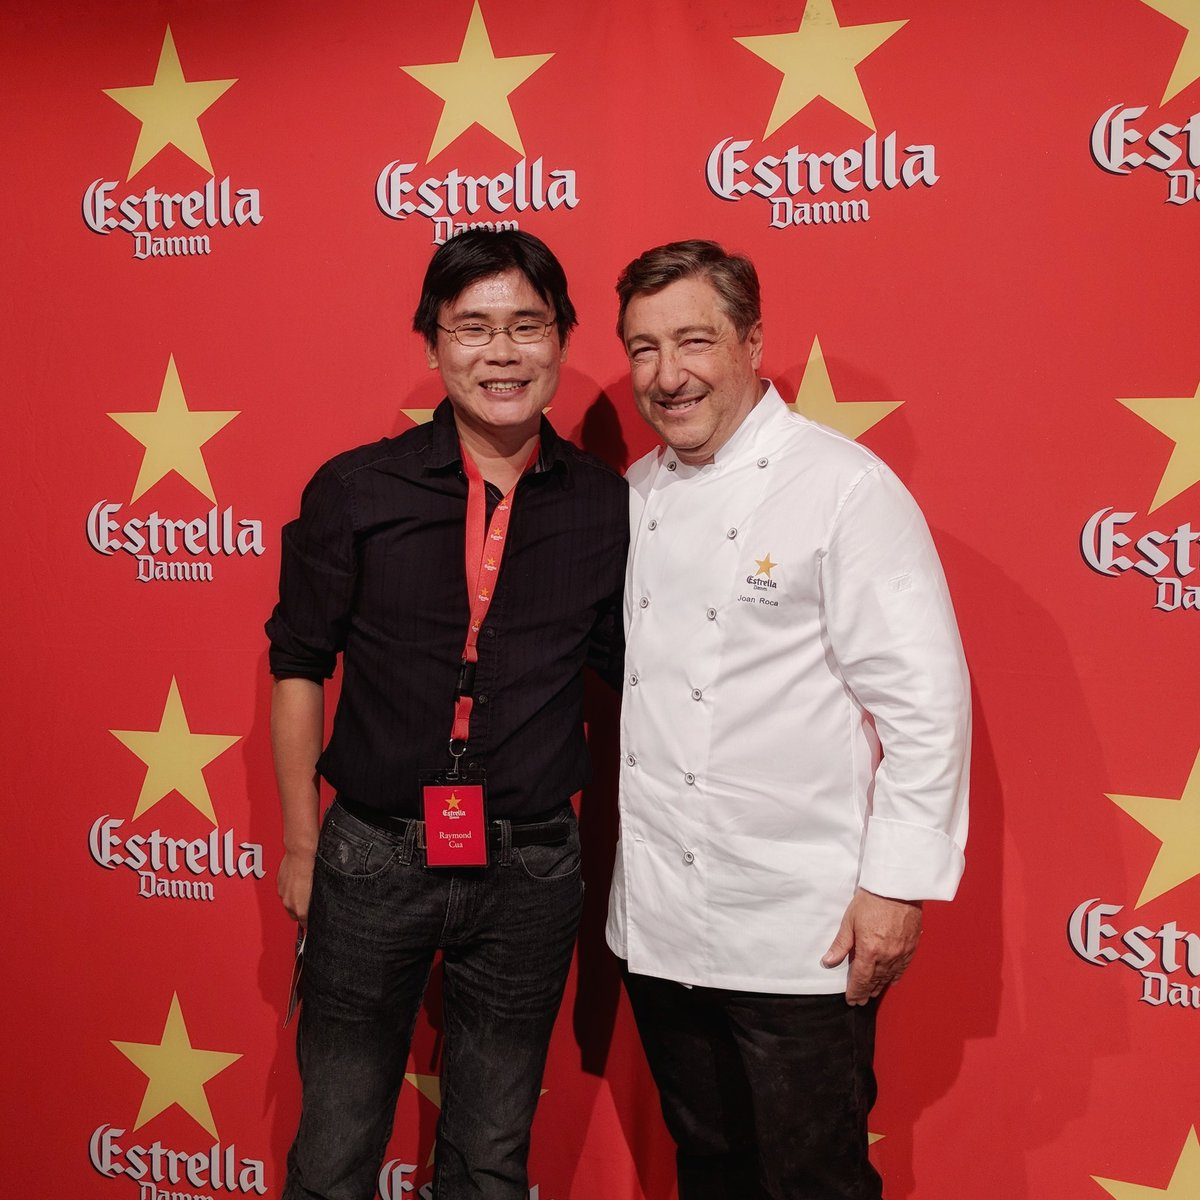 Joan Roca and Travelling Foodie at Estrella Damm Gastronomy Congress in Toronto